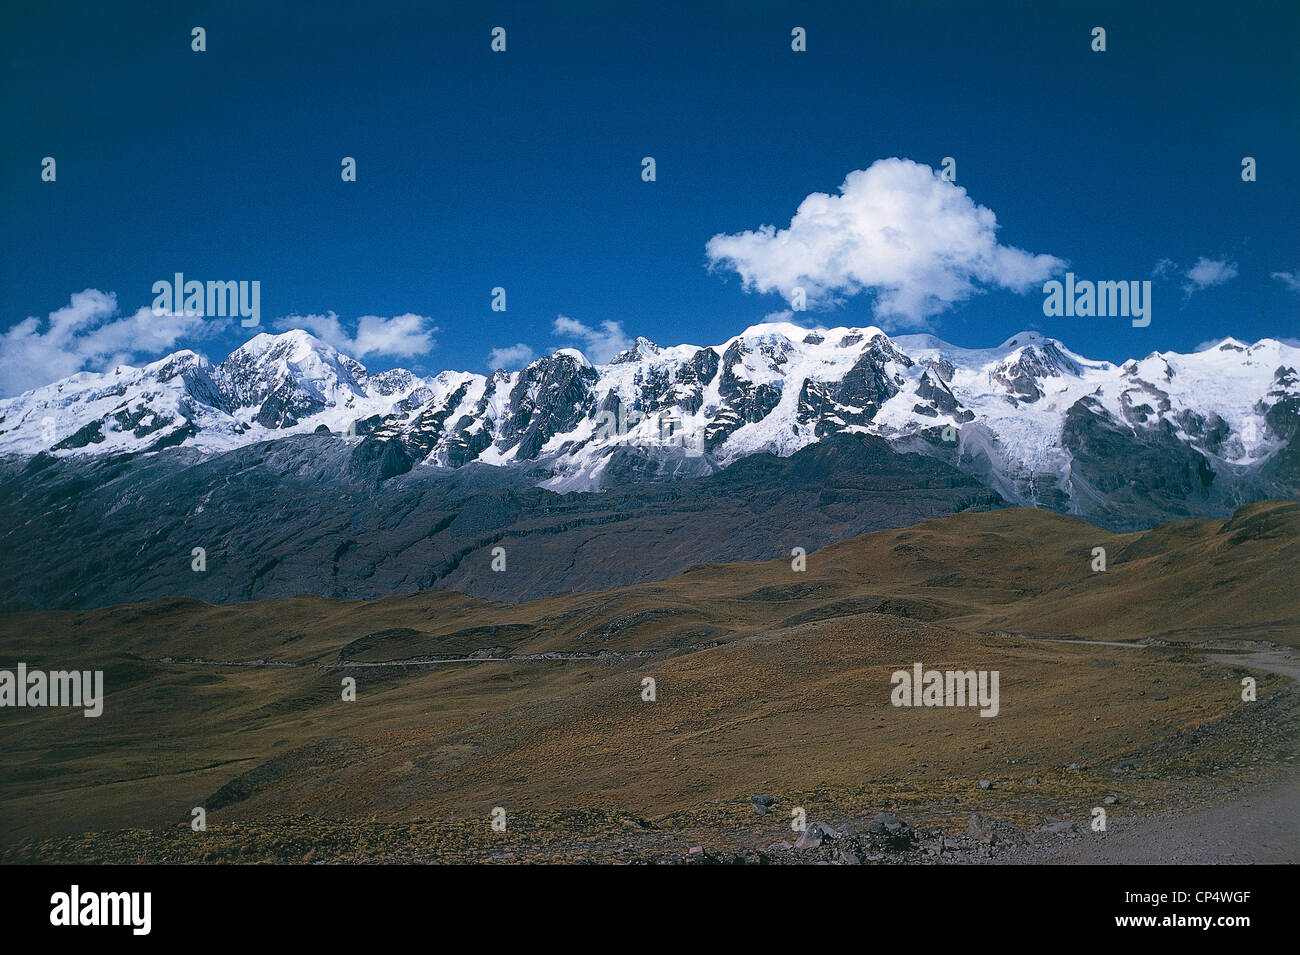 Bolivia - The snowy peaks of the Cordillera Real. - Stock Image